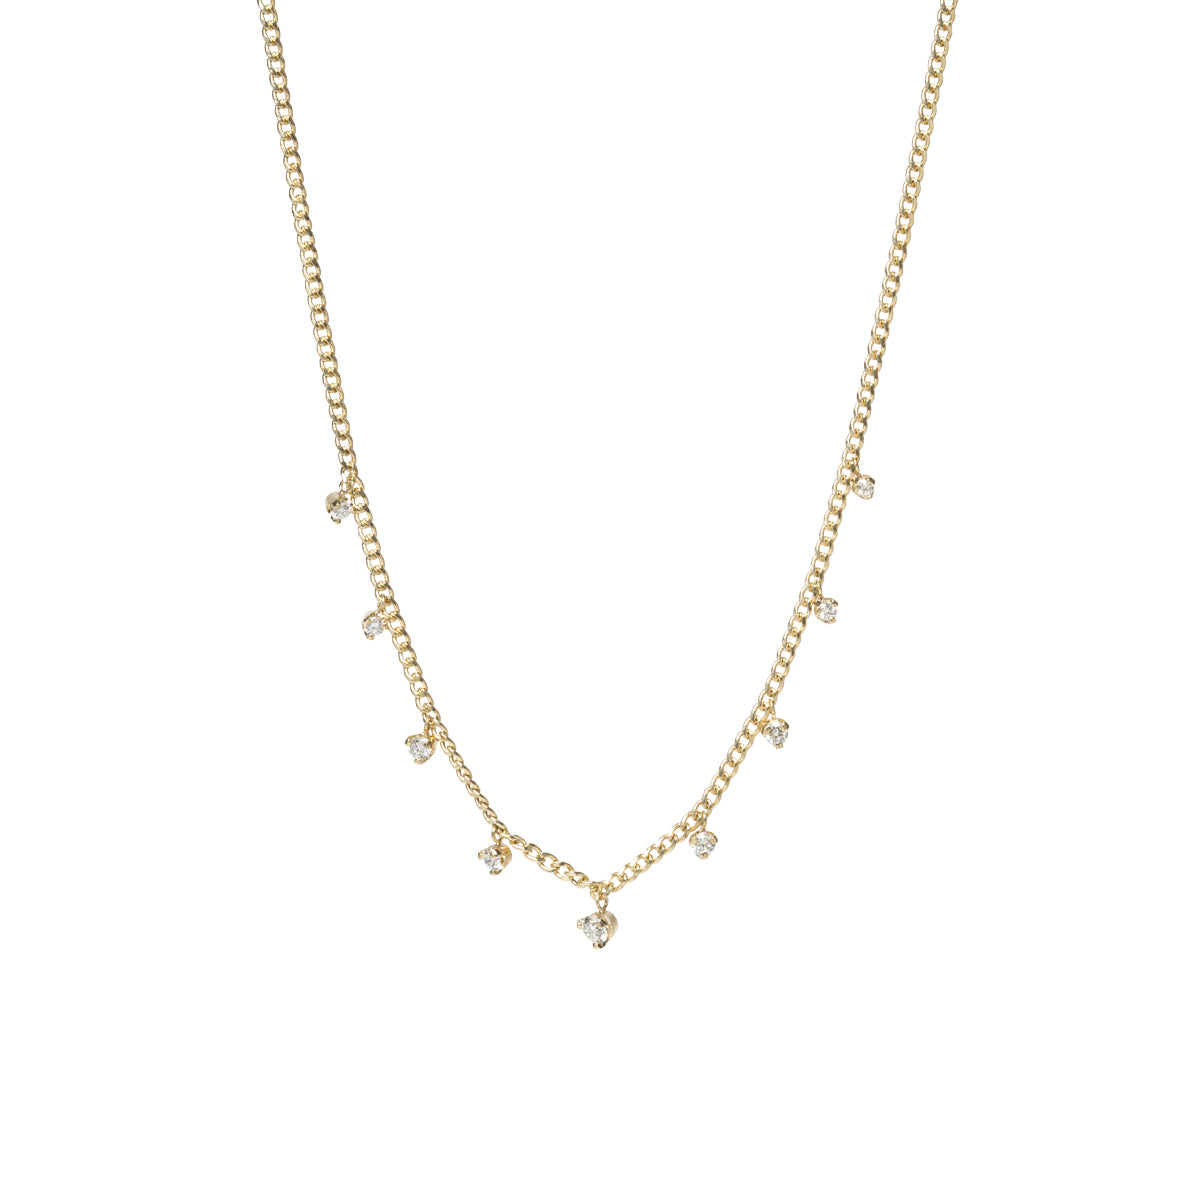 14k gold extra small curb chain necklace with 9 prong diamonds